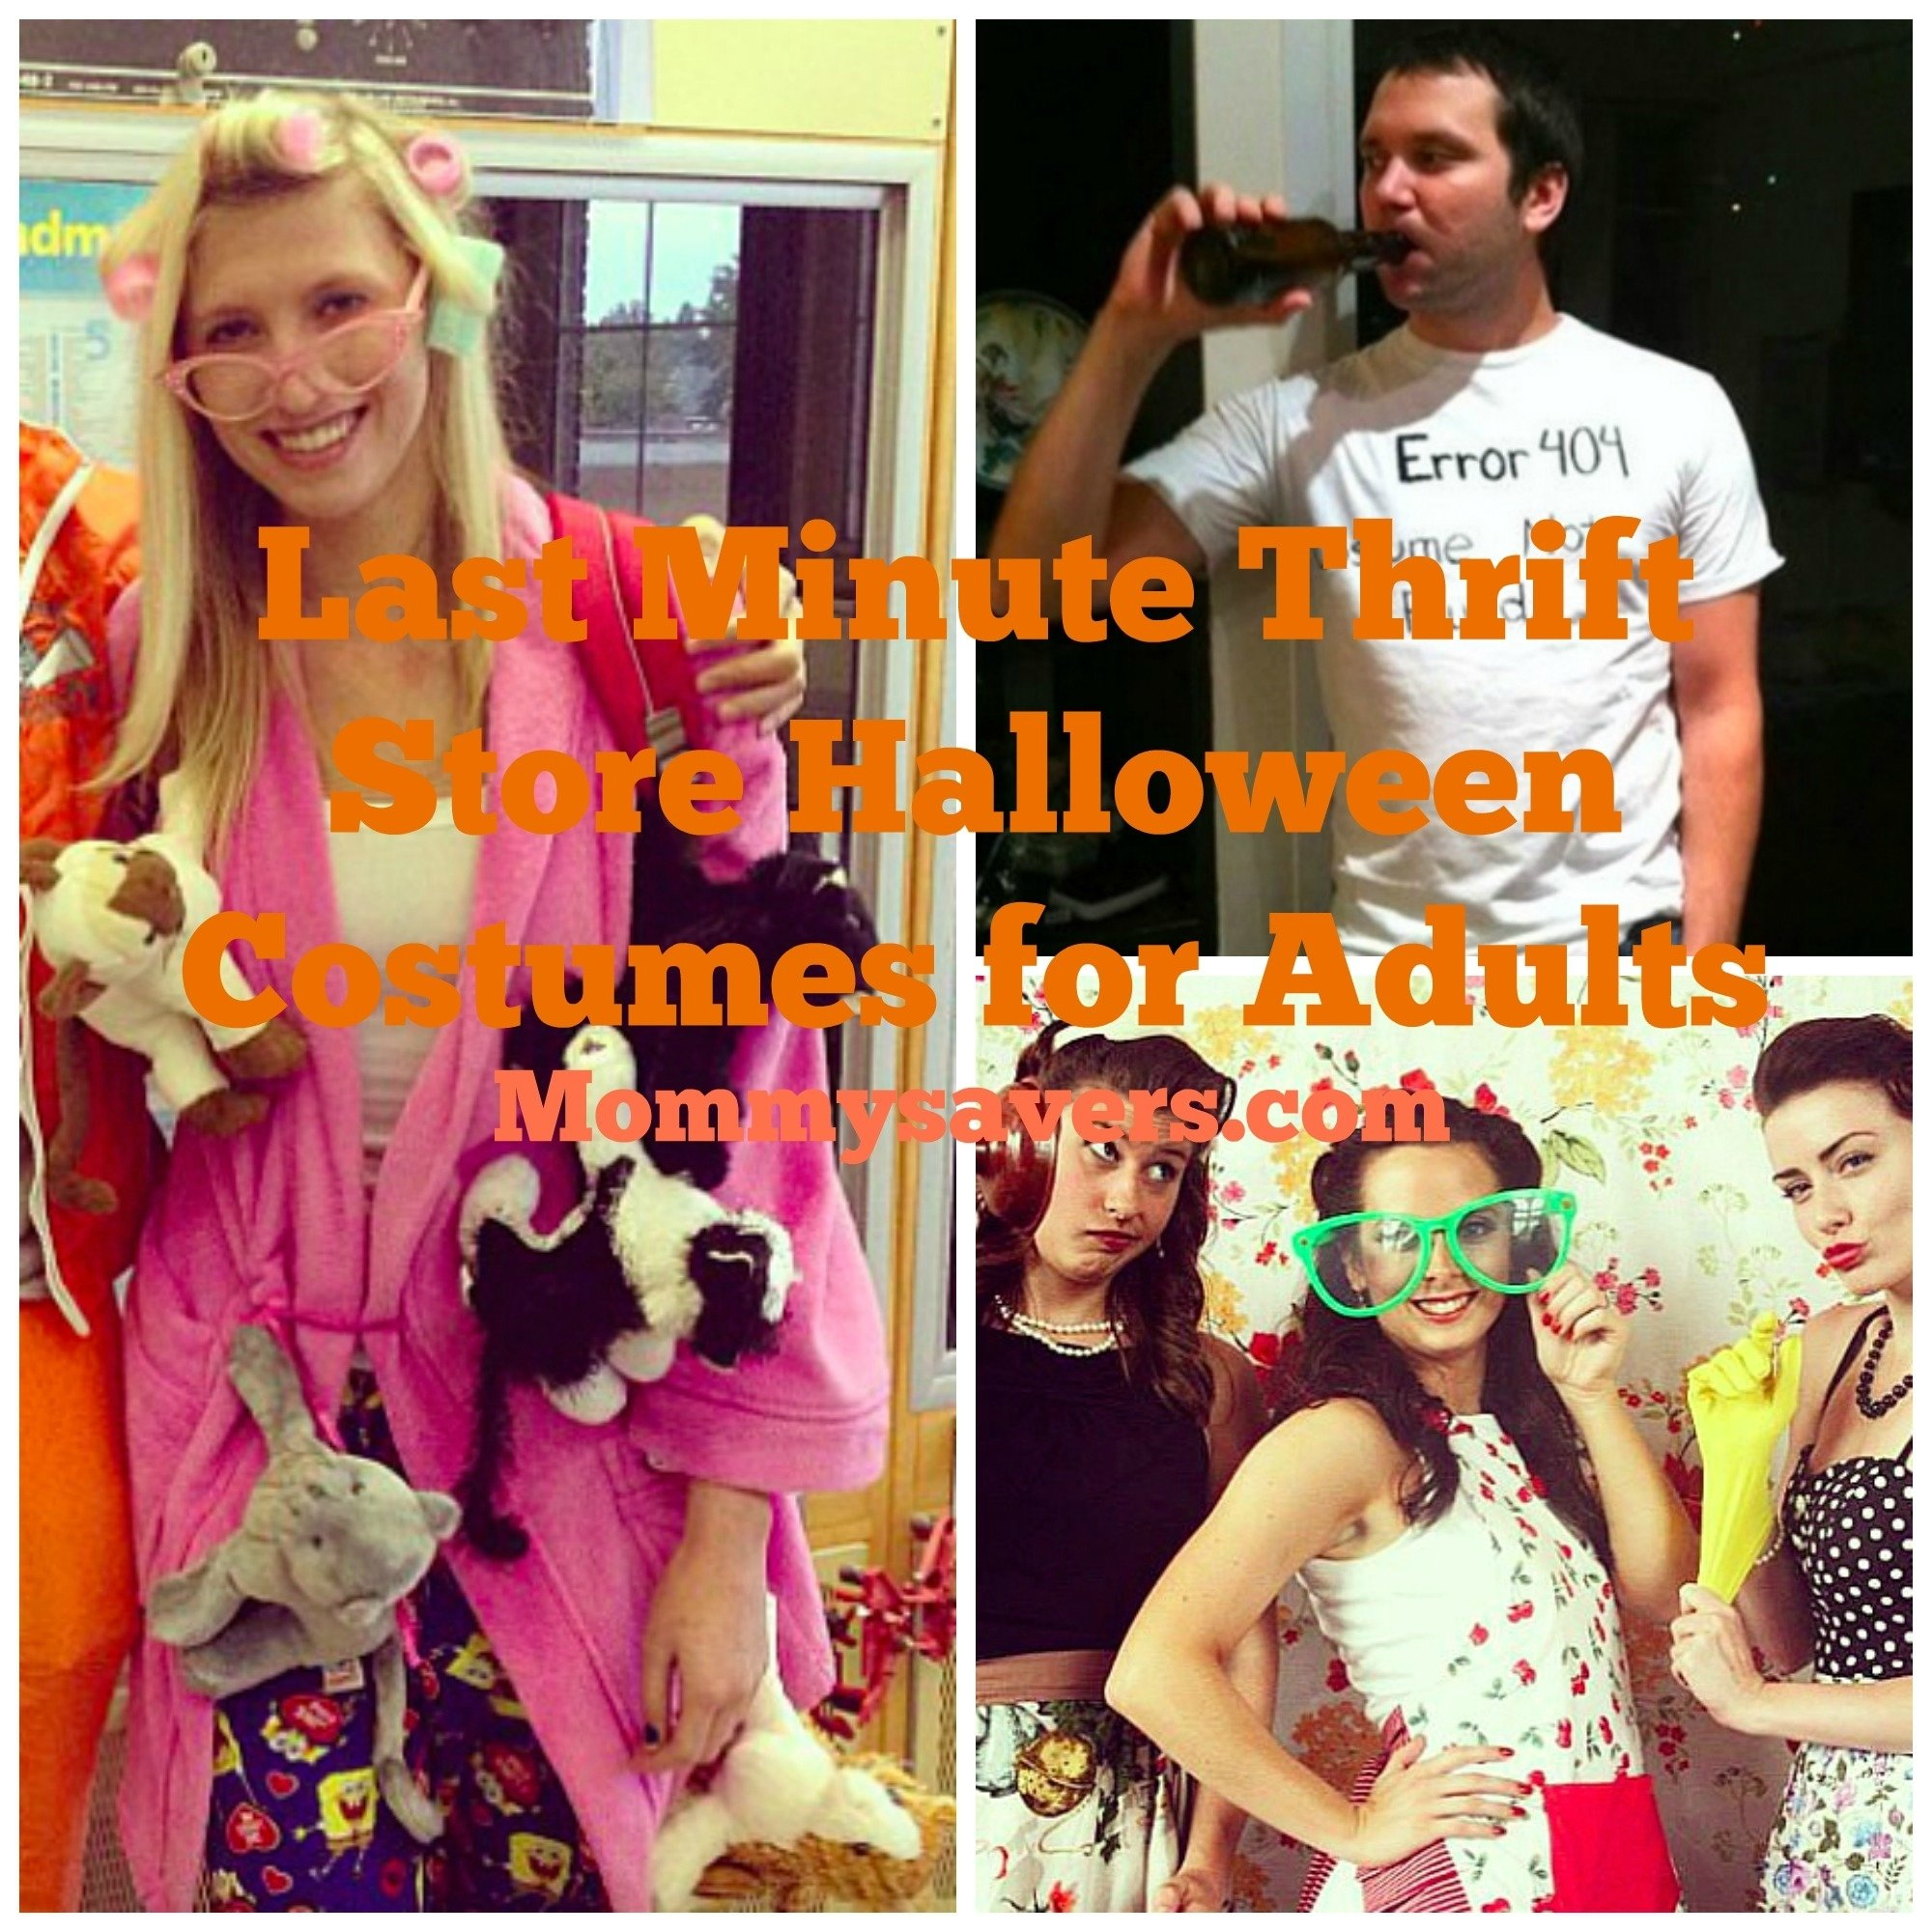 10 Perfect Last Minute Adult Costume Ideas last minute thrift store halloween costume ideas for adults 3 2020